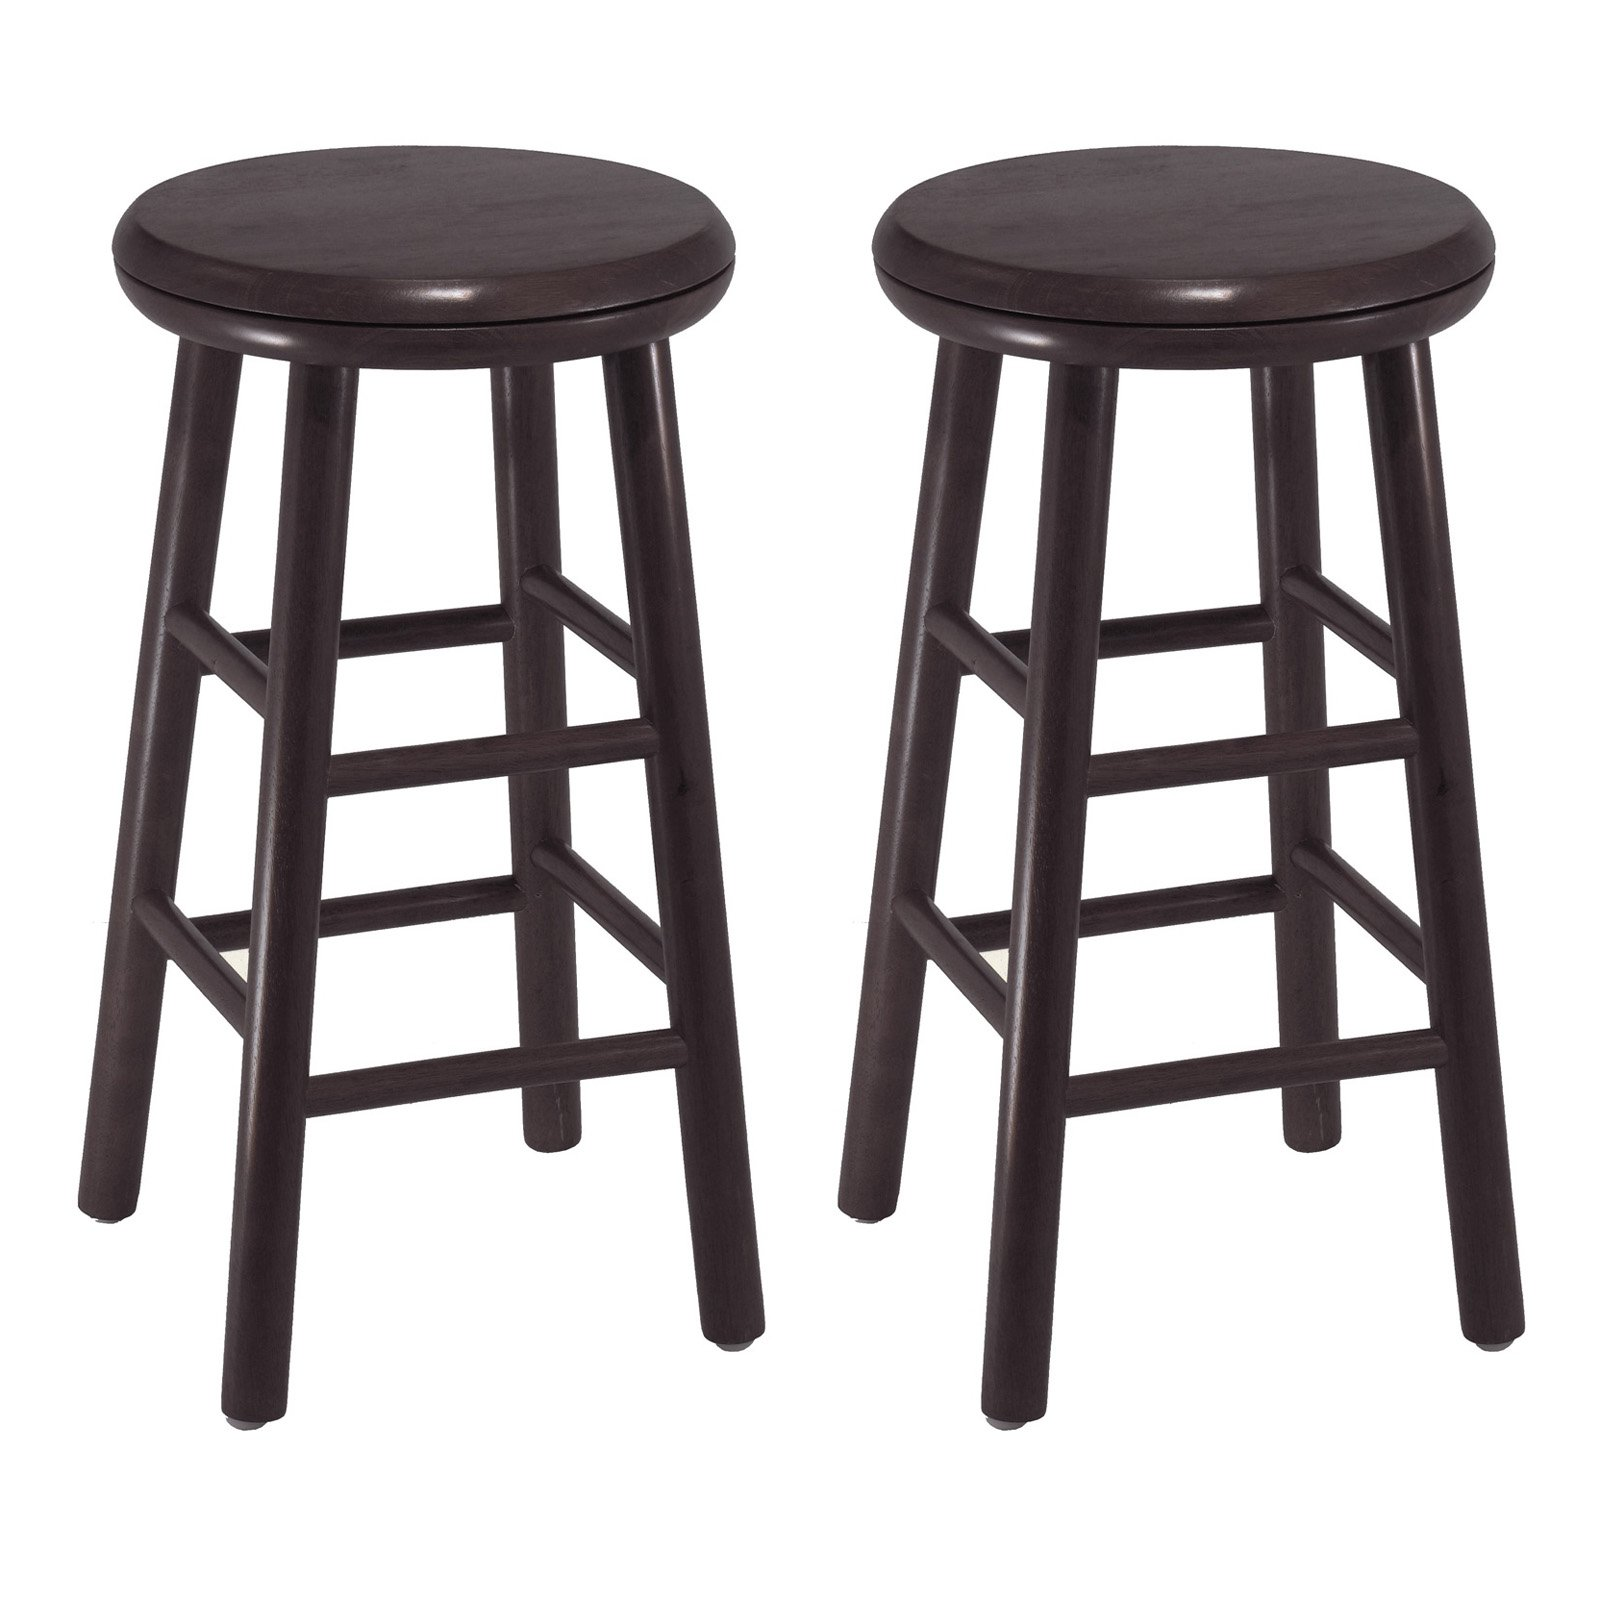 Winsome Wood Oakley Swivel Counter Stools Set Of 2 Multiple Finish